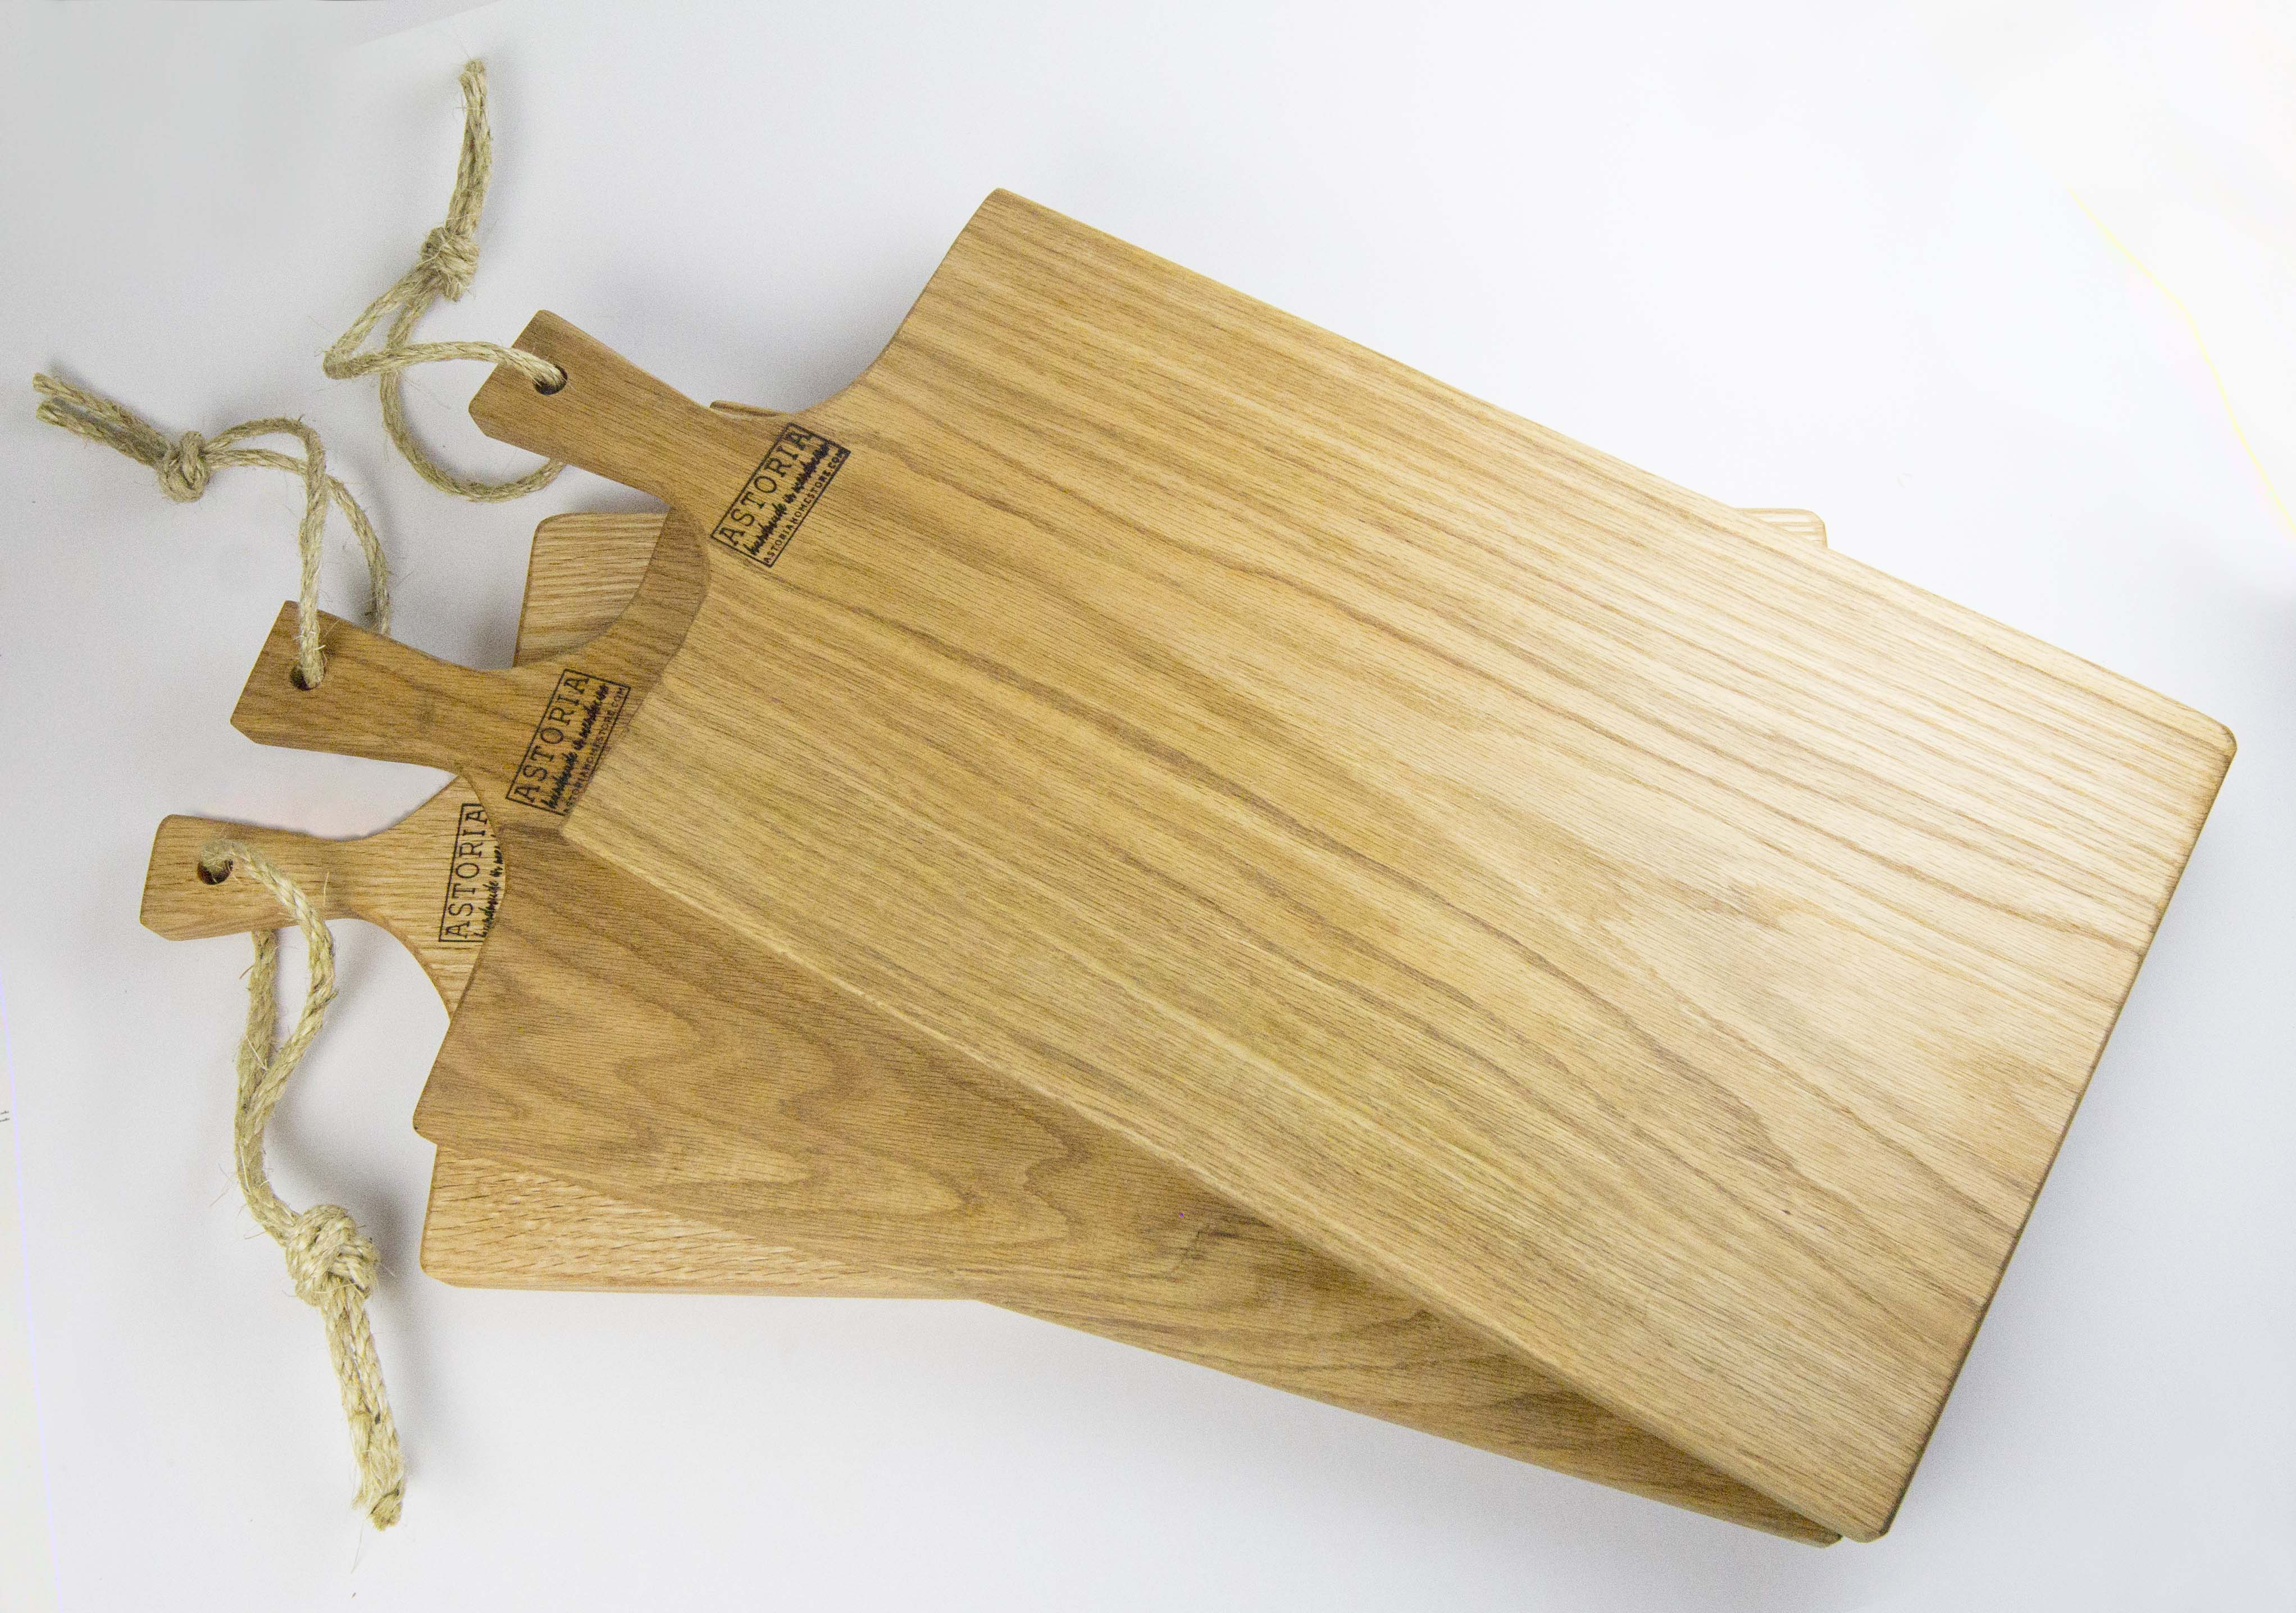 Handmade Cutting Board and Serving Tray Combo